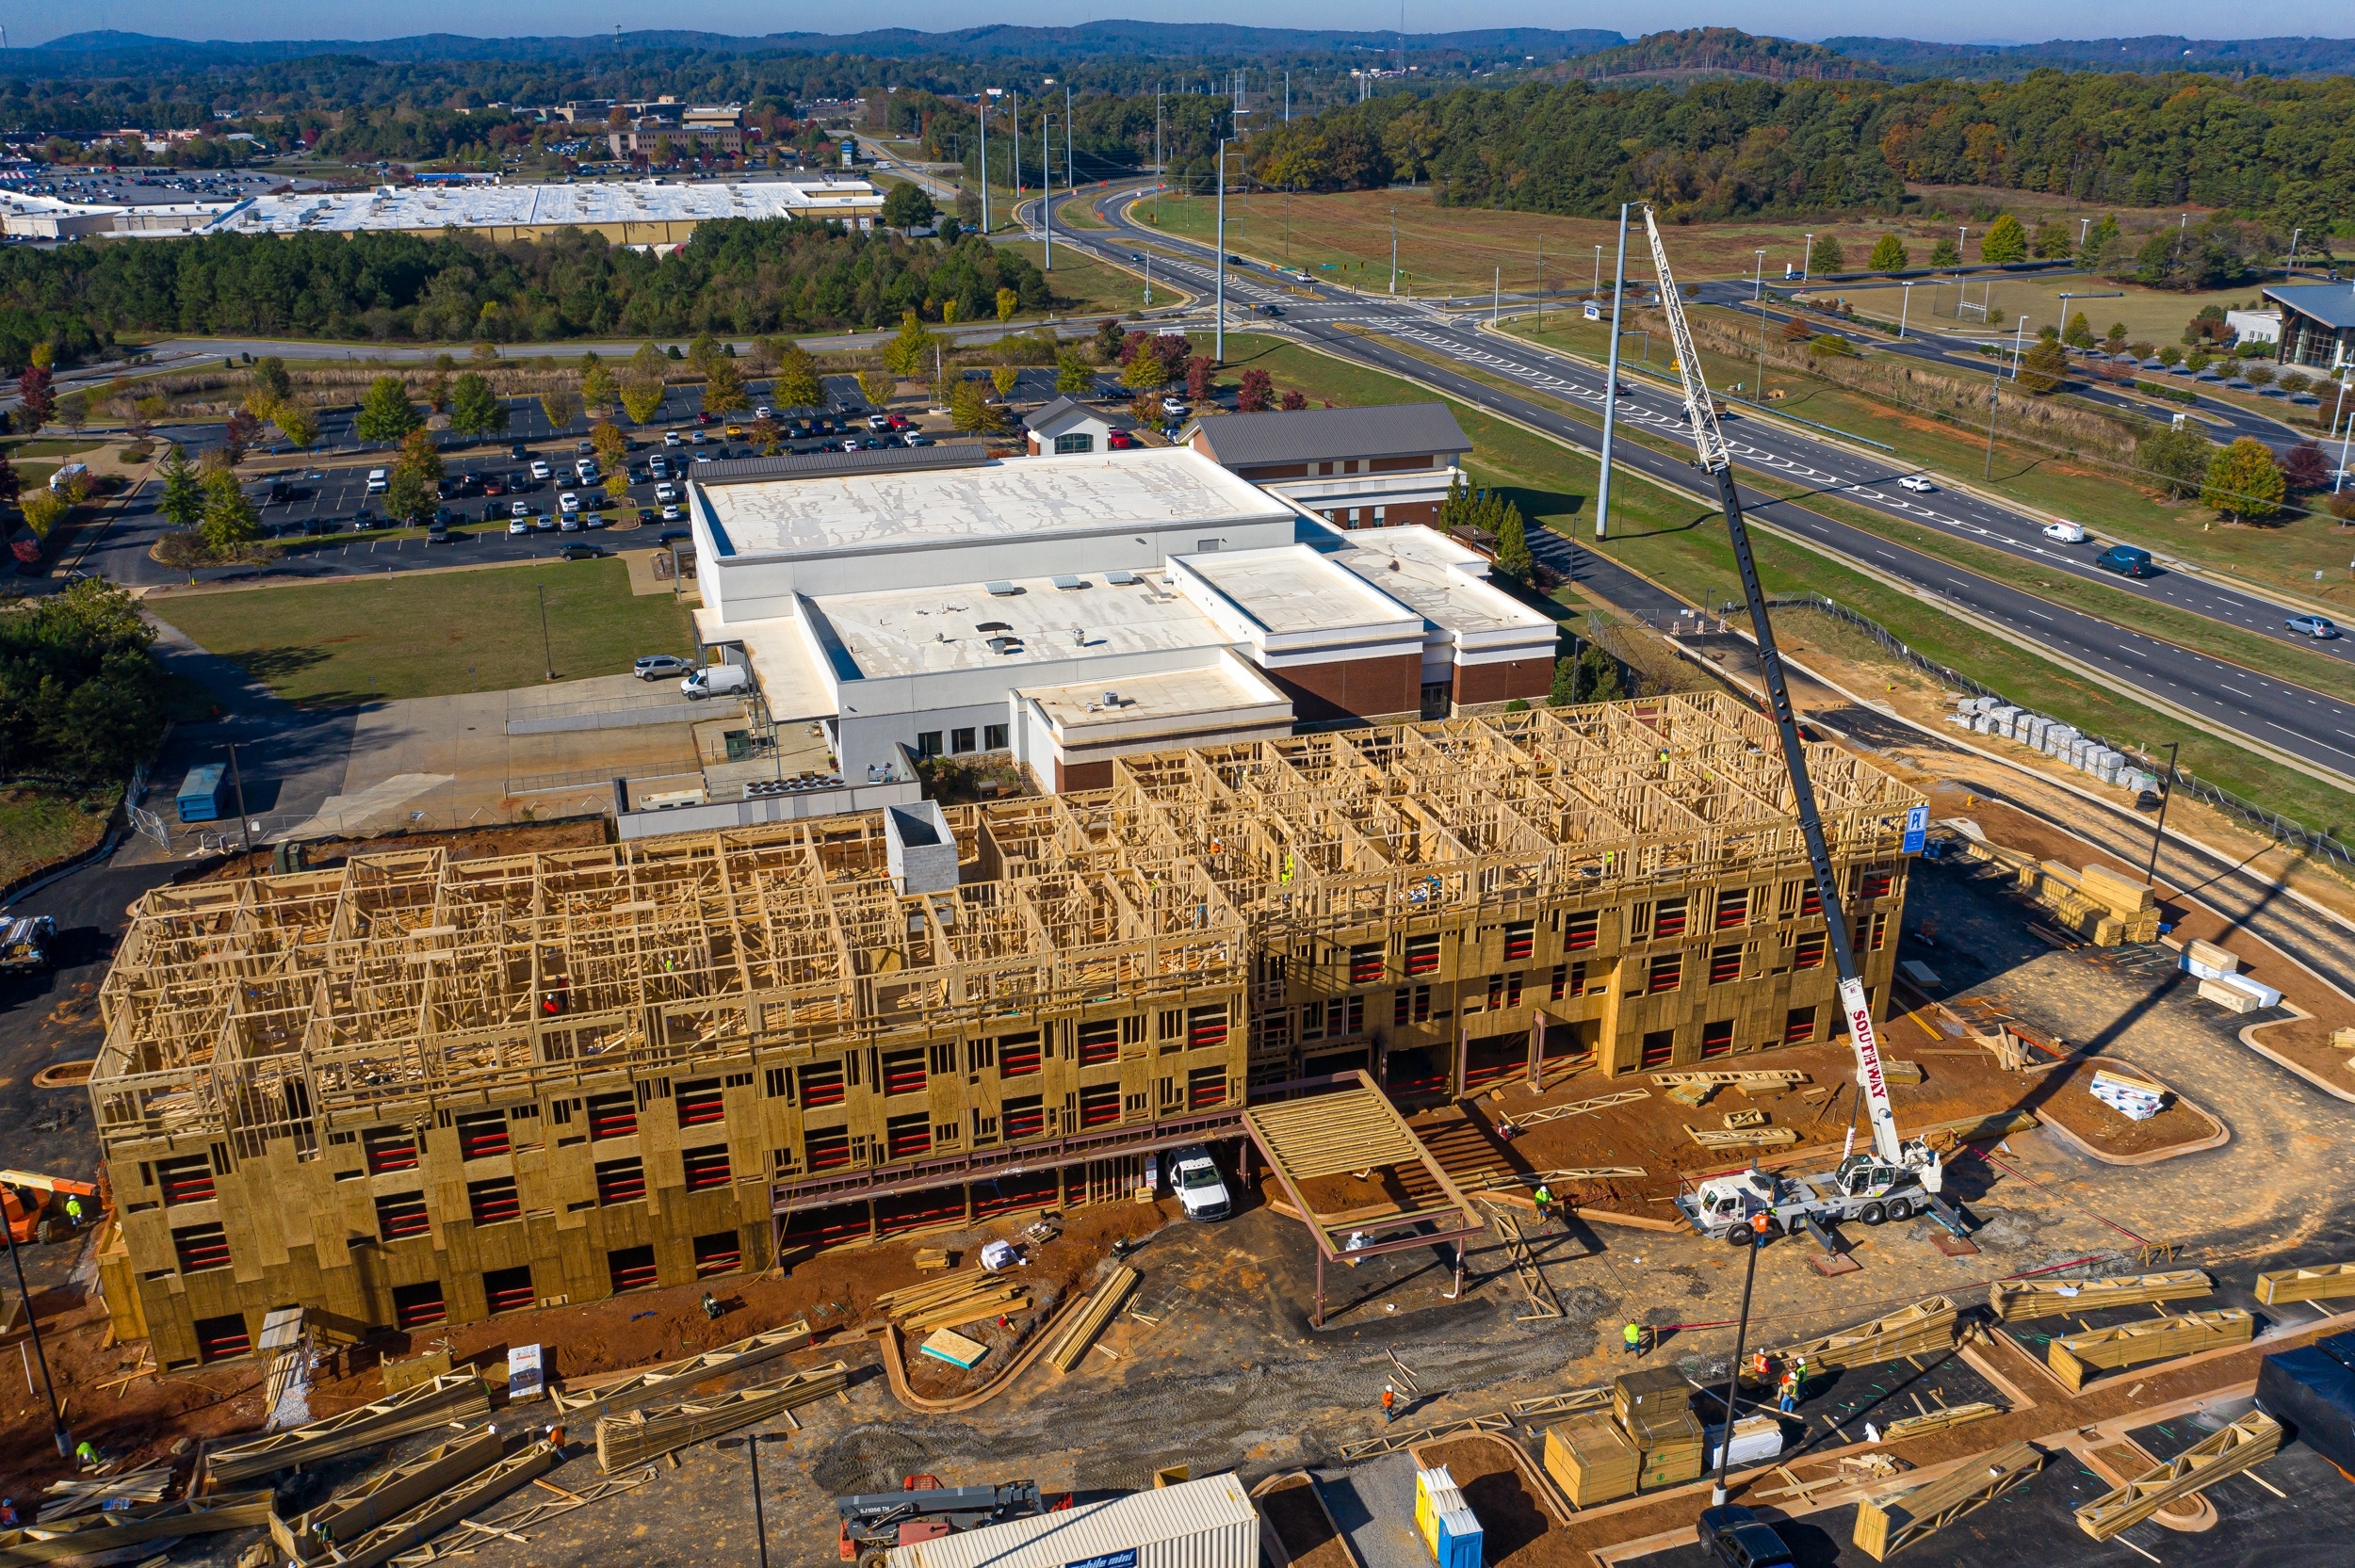 aerial photo of a marriott hotel under construction in cartersville georgia